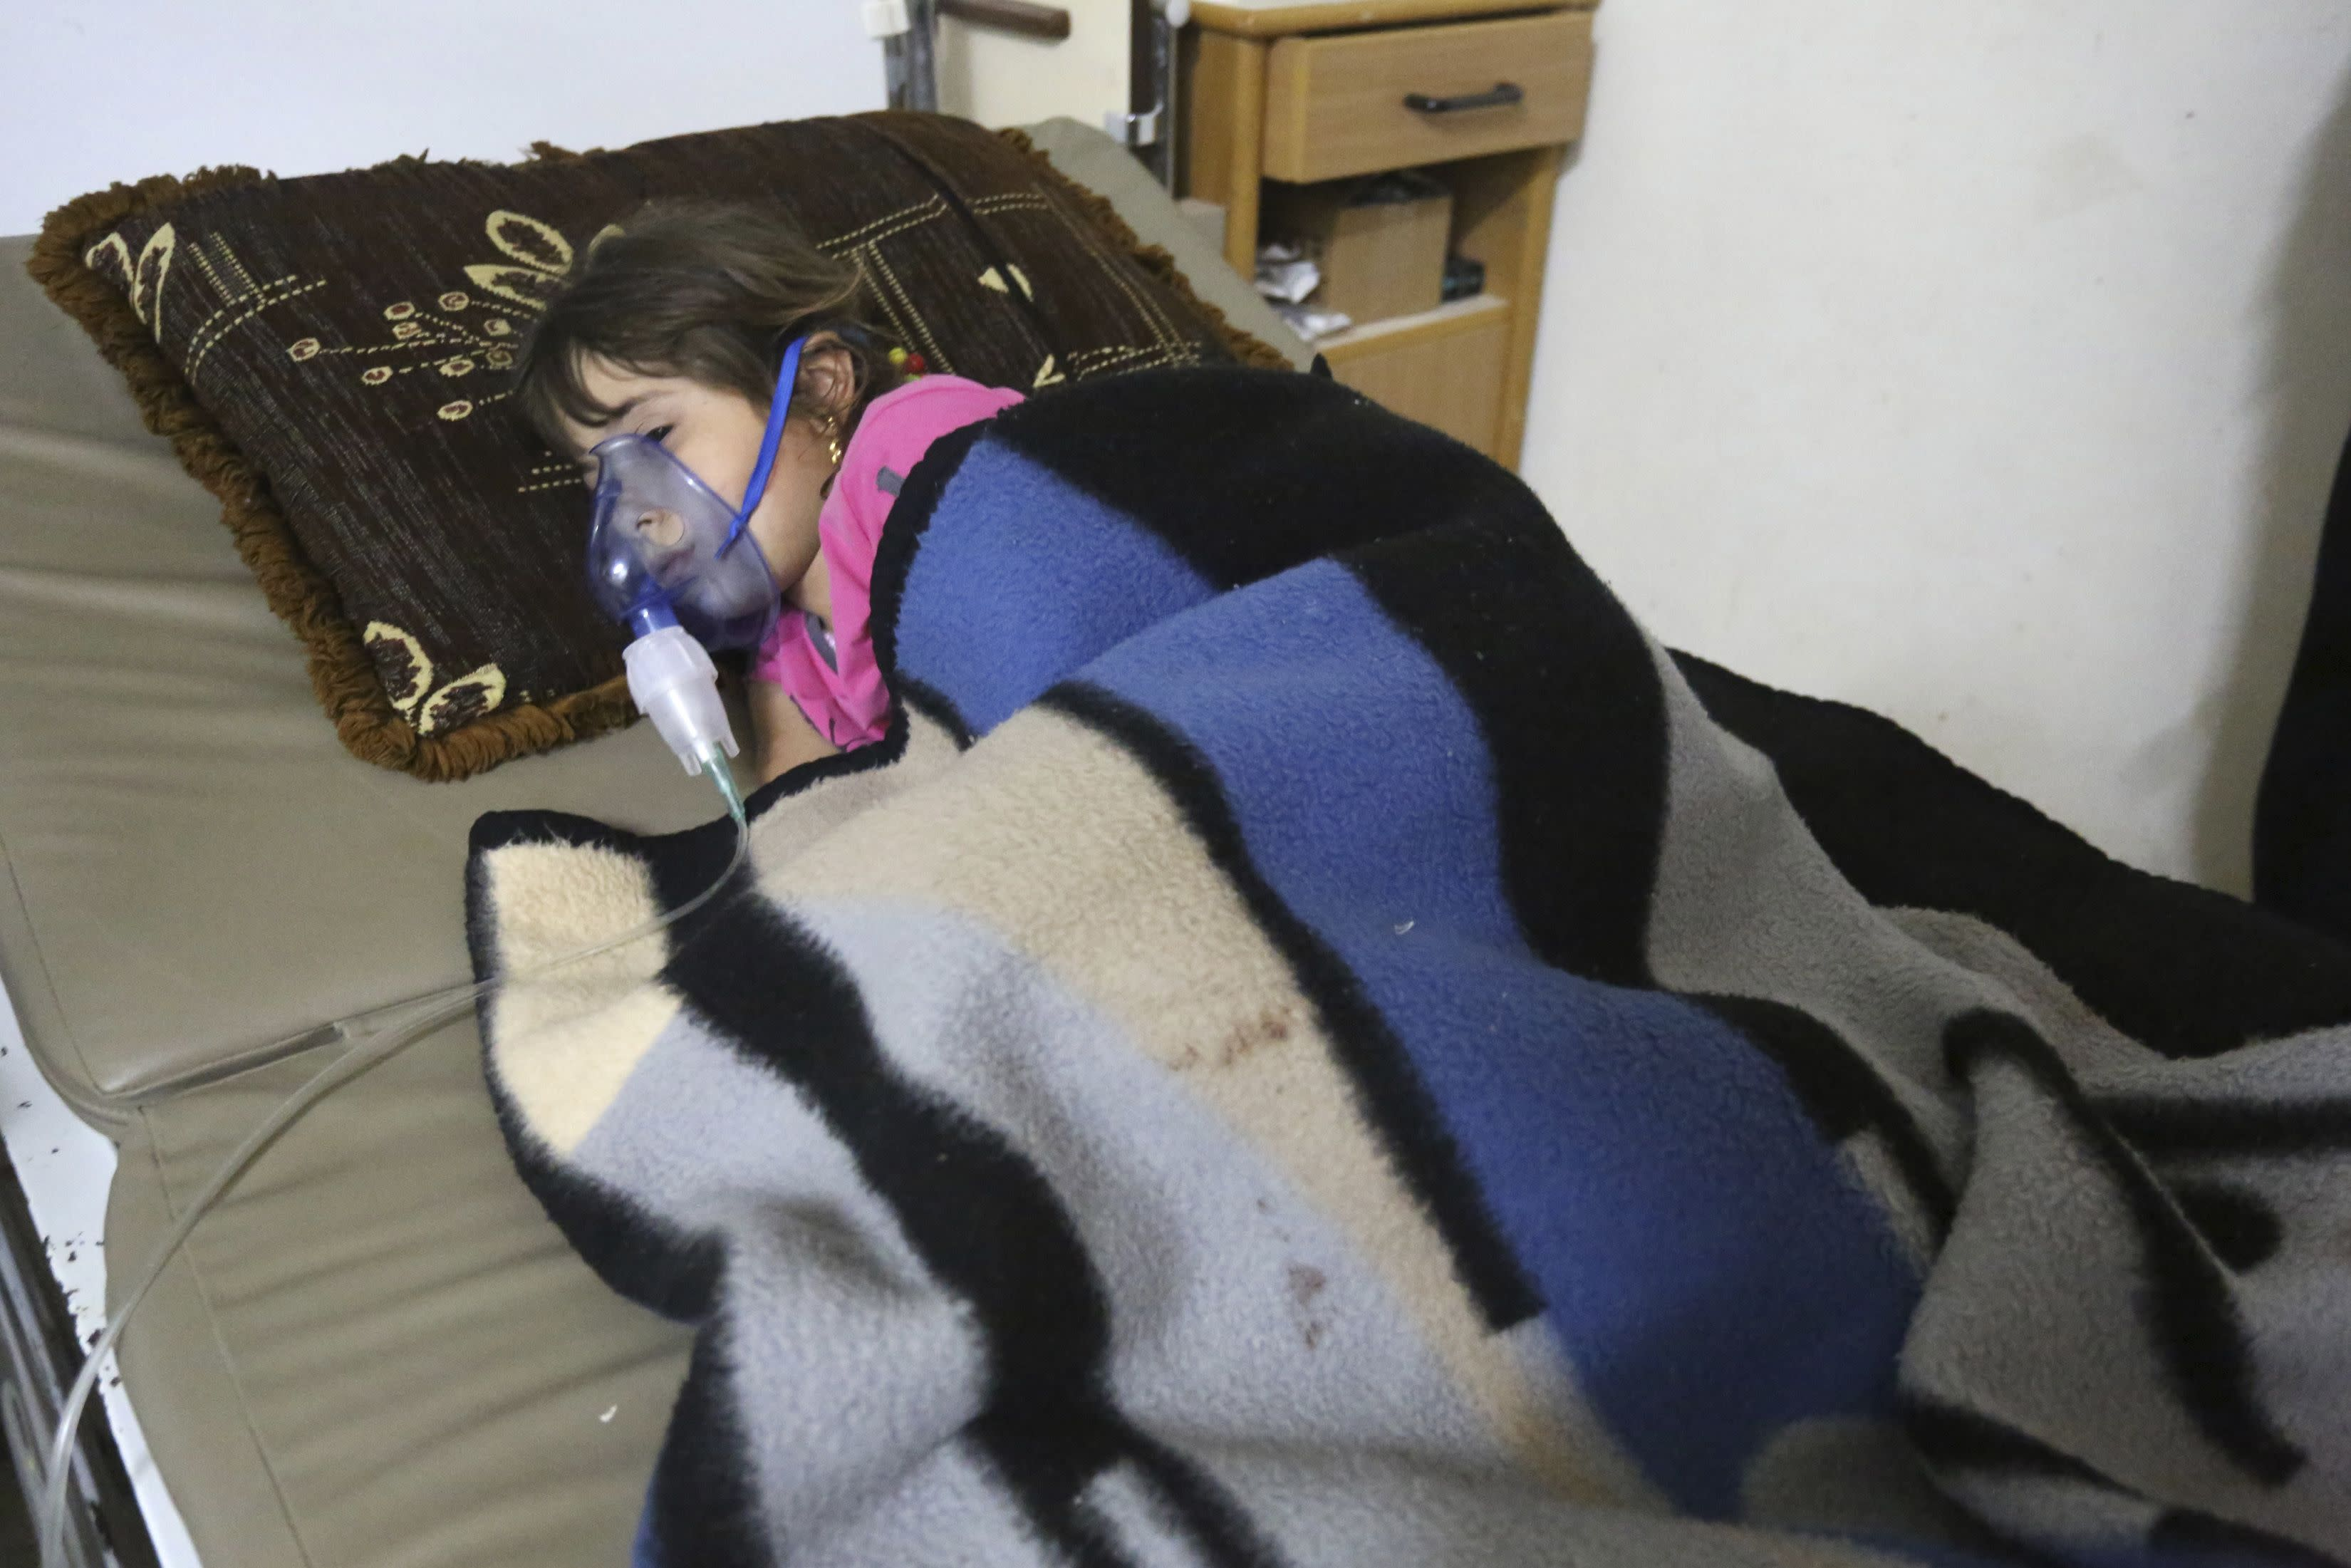 A girl, affected by what activists say was a gas attack, receives treatment inside a makeshift hospital in Kfar Zeita village in the central province of Hama May 22, 2014. Syrian opposition activists have posted a video of what they say is chlorine gas floating through the streets of the village, the first such footage of an alleged chemical weapon campaign by President Bashar al-Assad. The village of Kfar Zeita, in the central province of Hama 125 miles (200 km) north of Damascus, has been the epicentre of what activists and medics say is two-month-long assault in which chlorine gas canisters are dropped out of helicopters. Picture taken May 22. To match story SYRIA-CRISIS/CHLORINE REUTERS/Badi Khlif (SYRIA - Tags: POLITICS CIVIL UNREST CONFLICT HEALTH TPX IMAGES OF THE DAY)